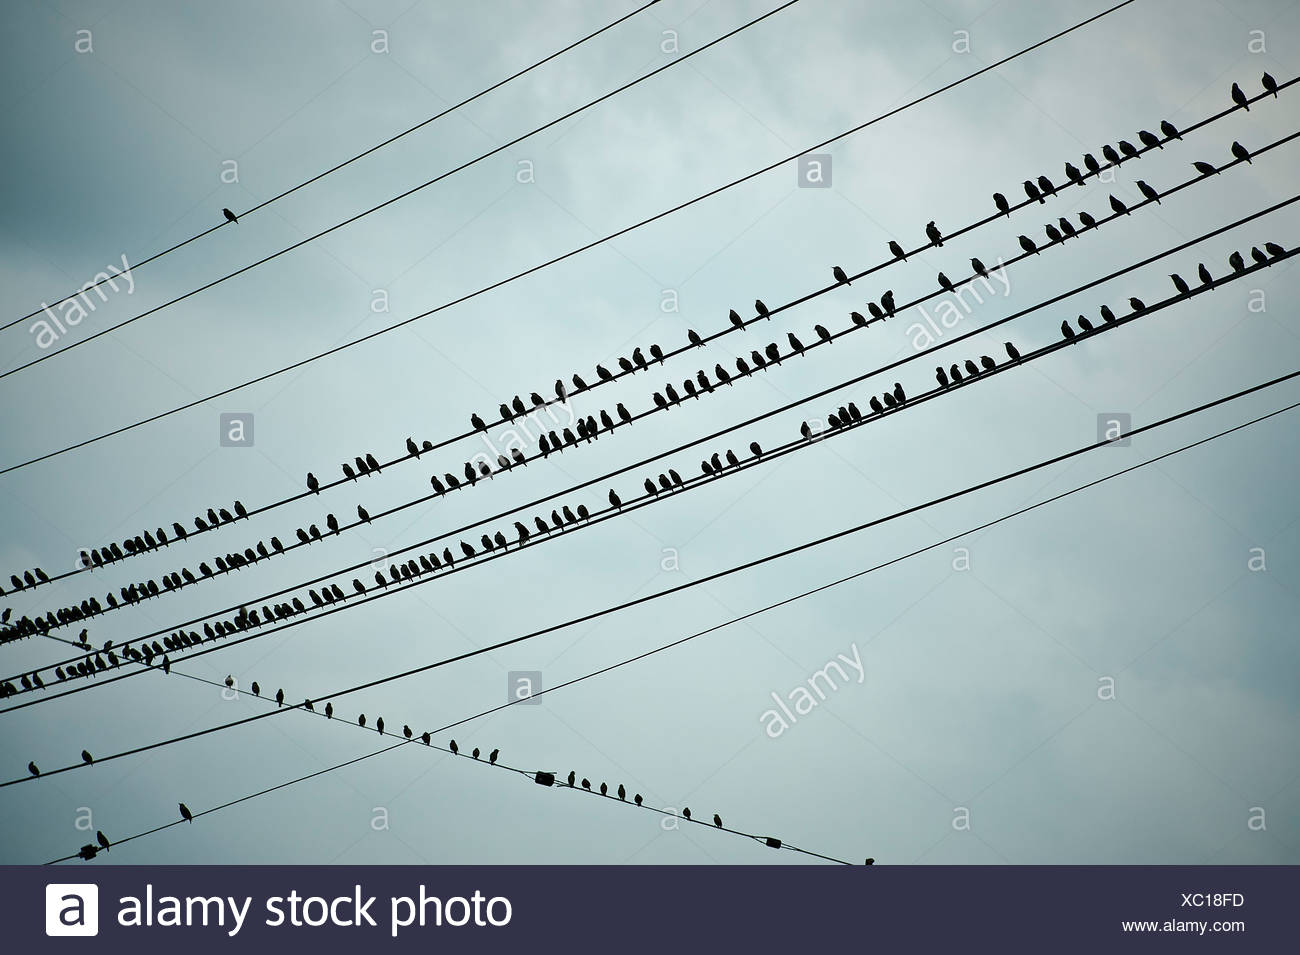 Birds on a wire. - Stock Image